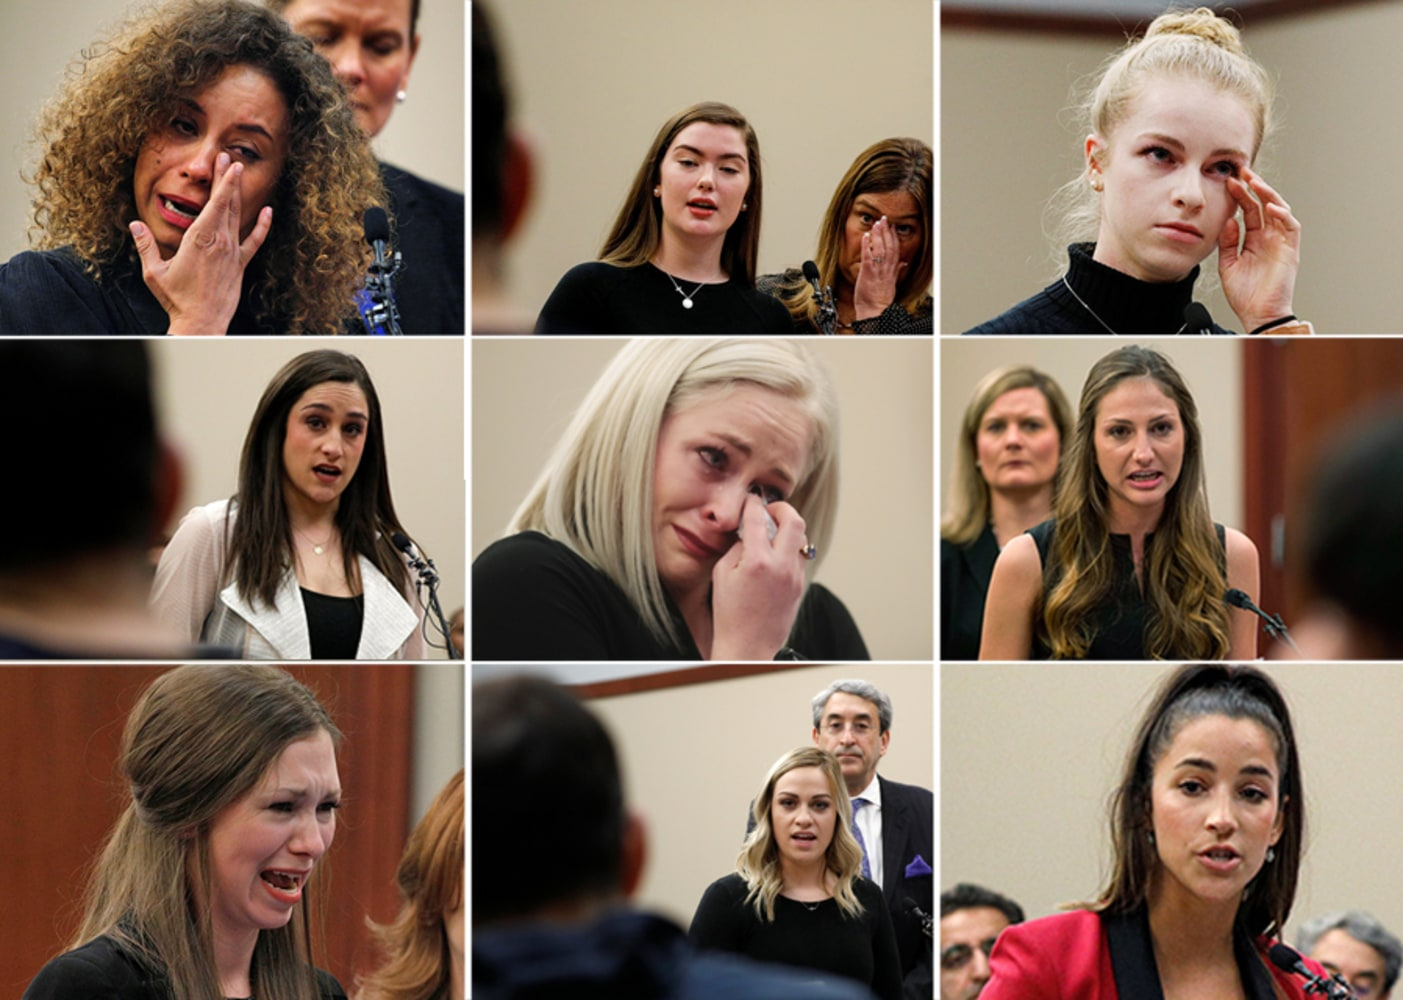 'Army of women' fights gymnastics doctor Larry Nassar with words